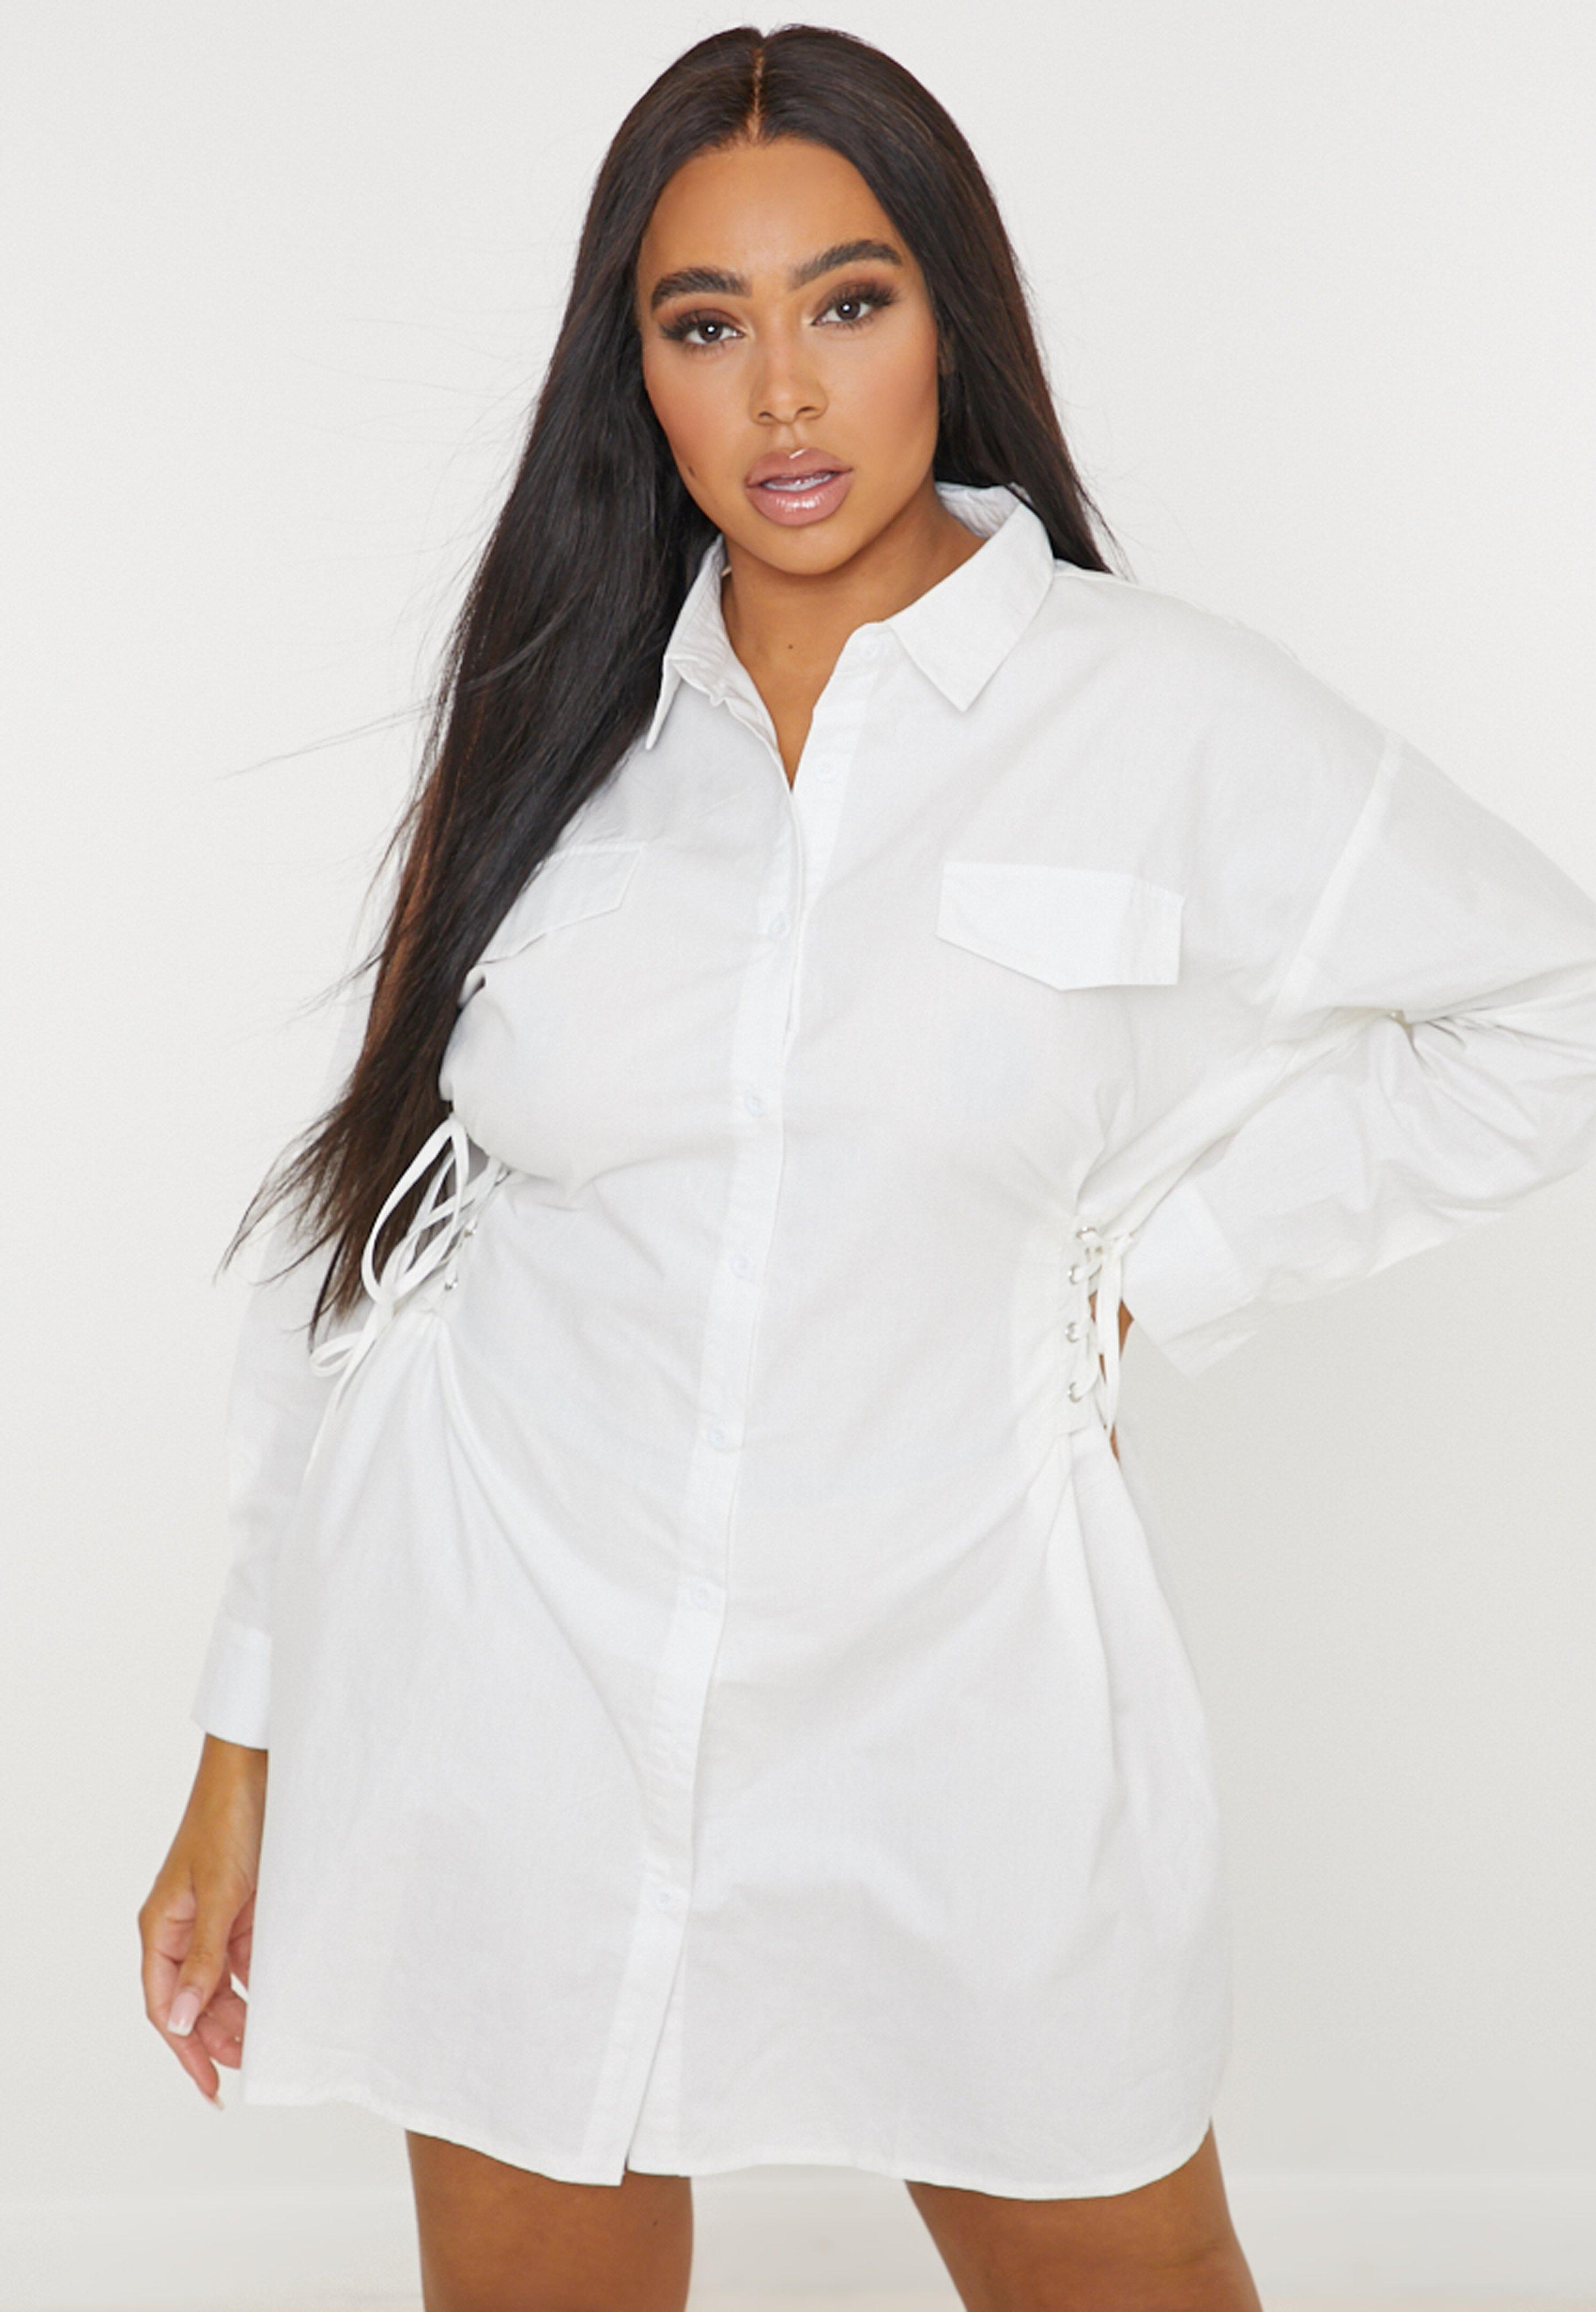 plus size white shirt dress with collar